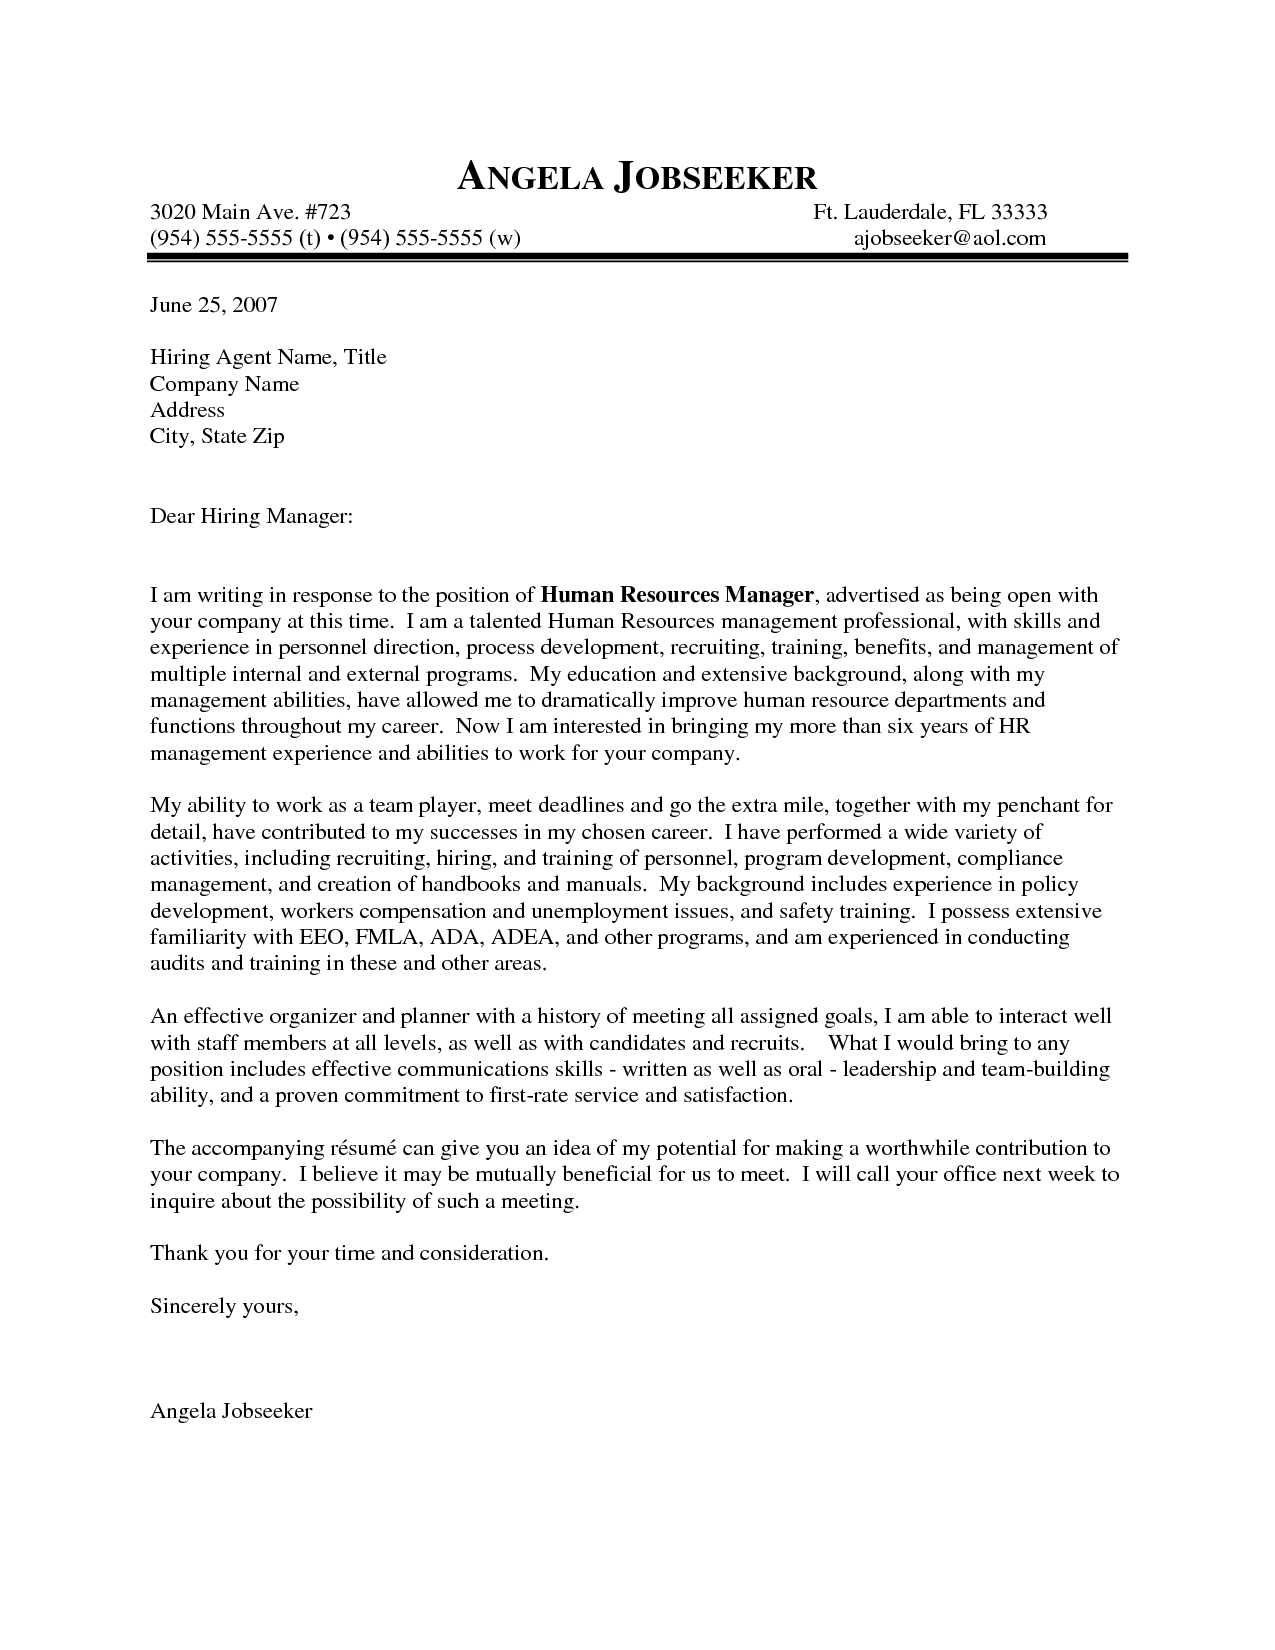 Human Resources Cover Letter Outstanding Cover Letter Examples  Hr Manager Cover Letter